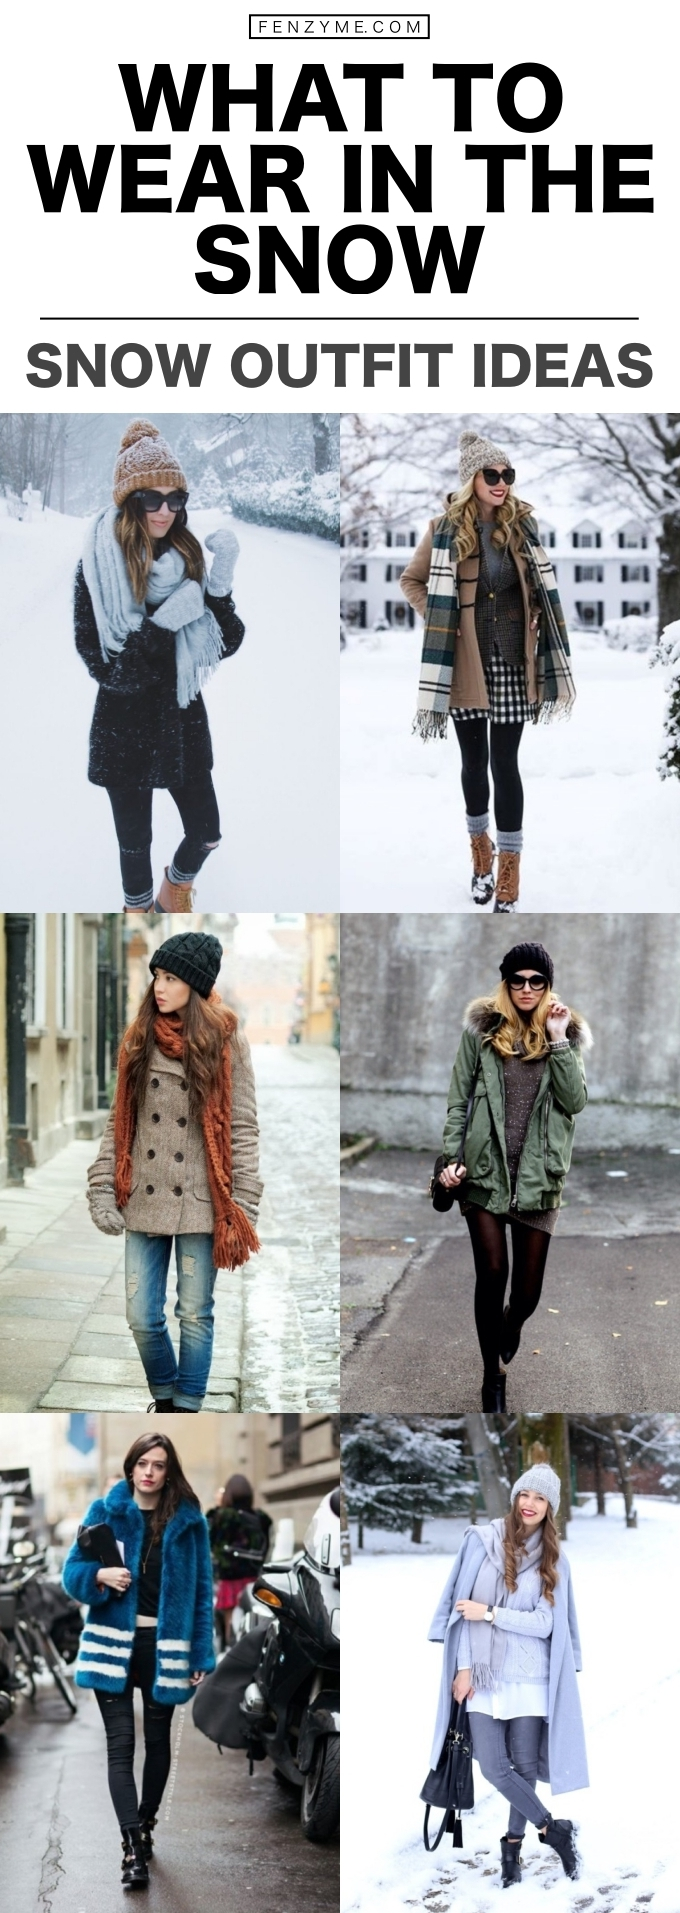 what to wear in the snow